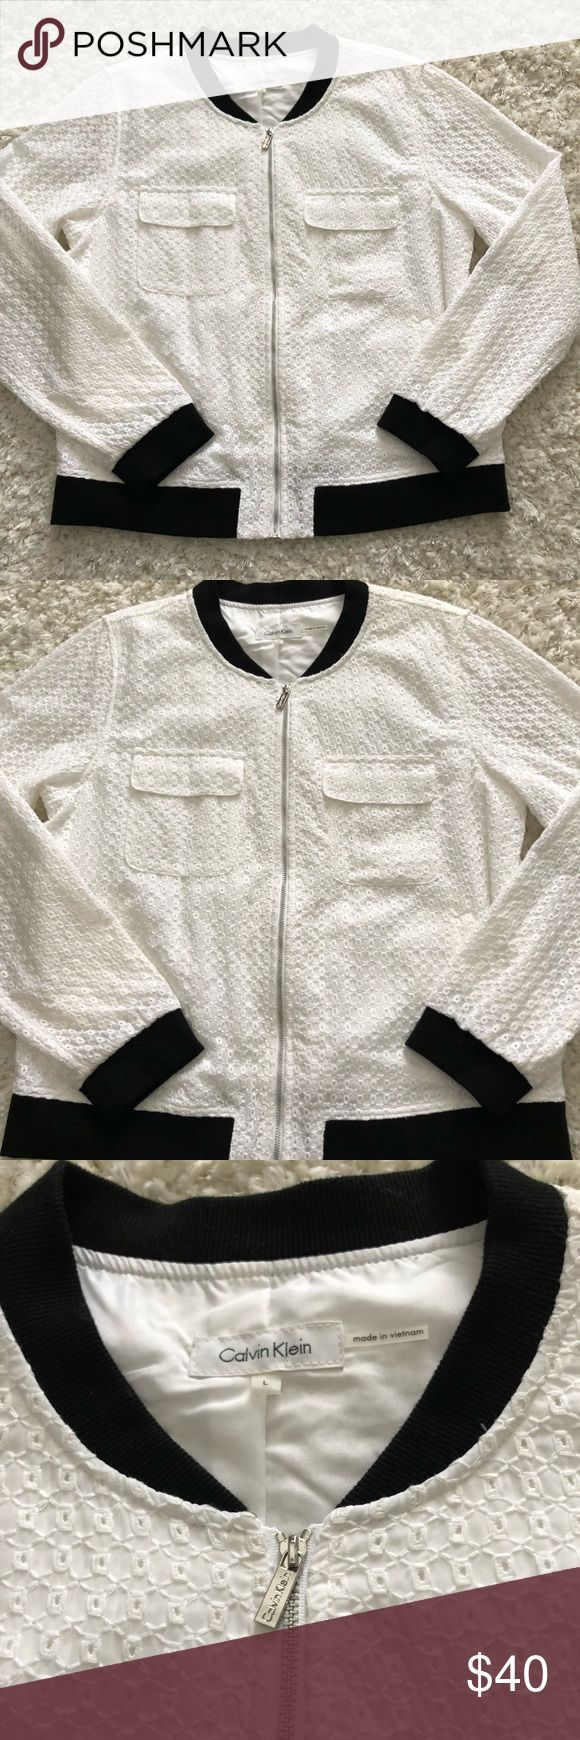 Calvin Klein Bomber Jacket Calvin Klein bomber jacket  Crochet detail all over jacket  Black trim on neckline and bottom of jacket  Size large  Like new condition  Shell is 53% cotton 47% polyester  Lining is 100% polyester Calvin Klein Jackets & Coats Utility Jackets